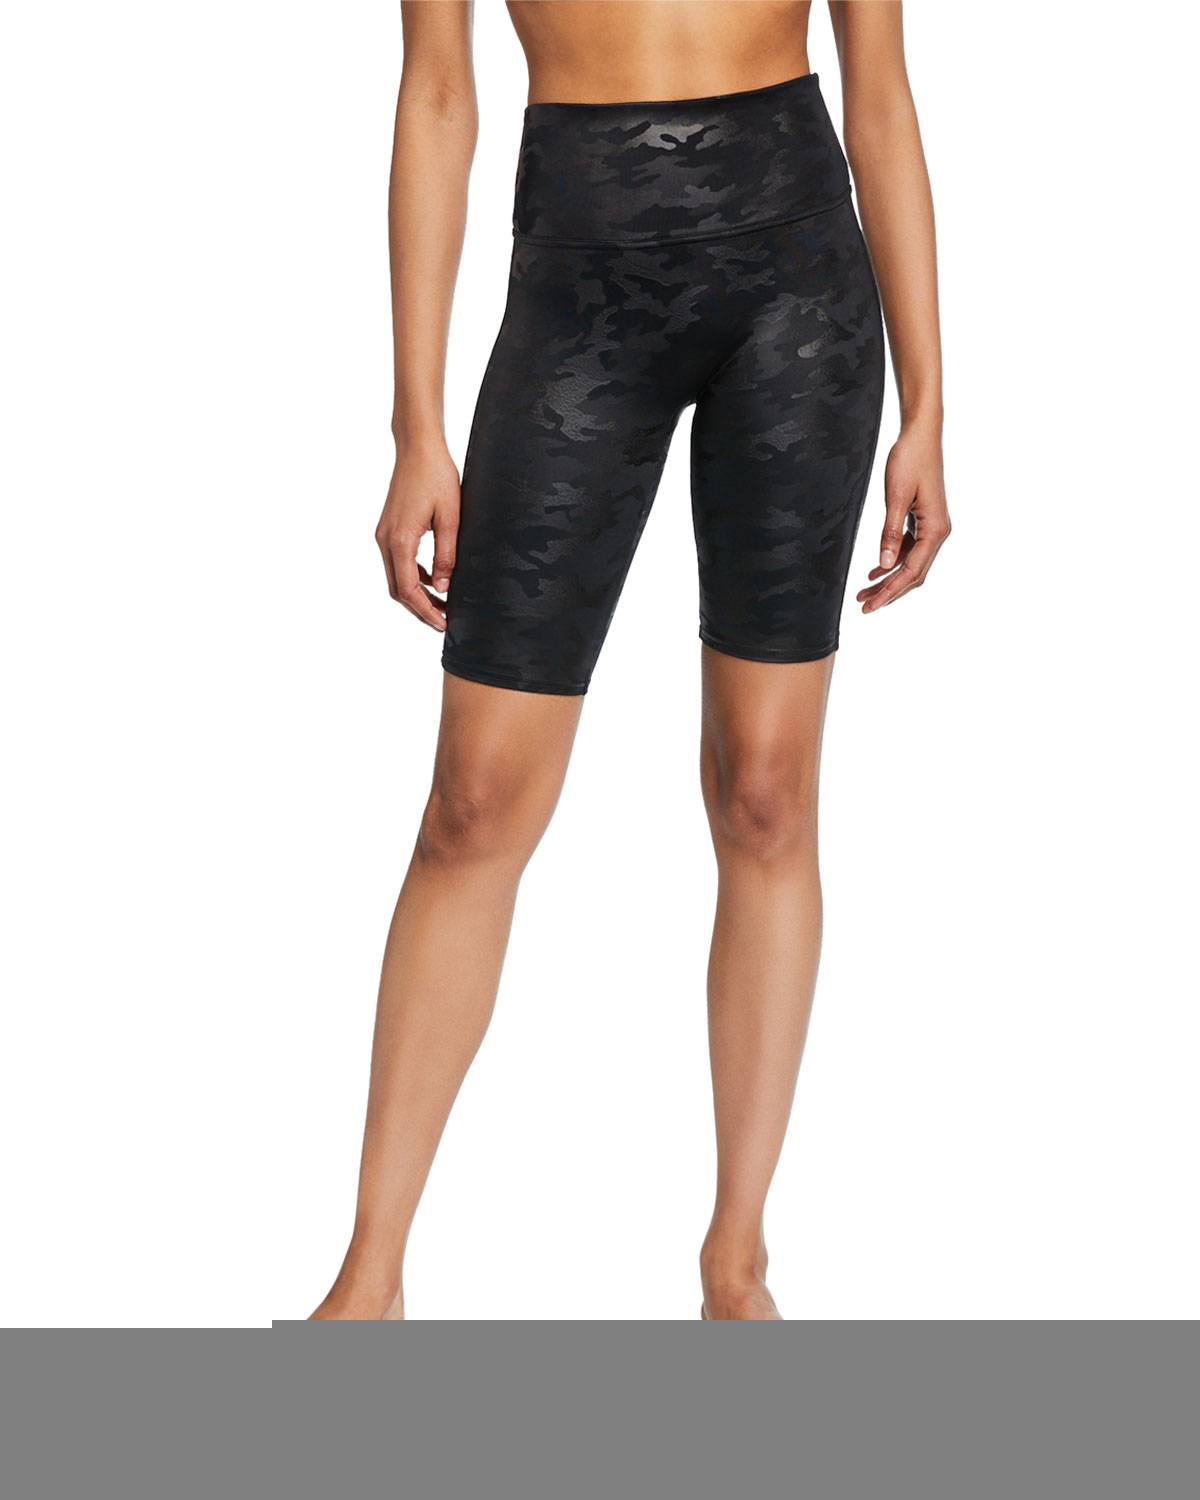 Spanx Faux-Leather Camo Bike Shorts